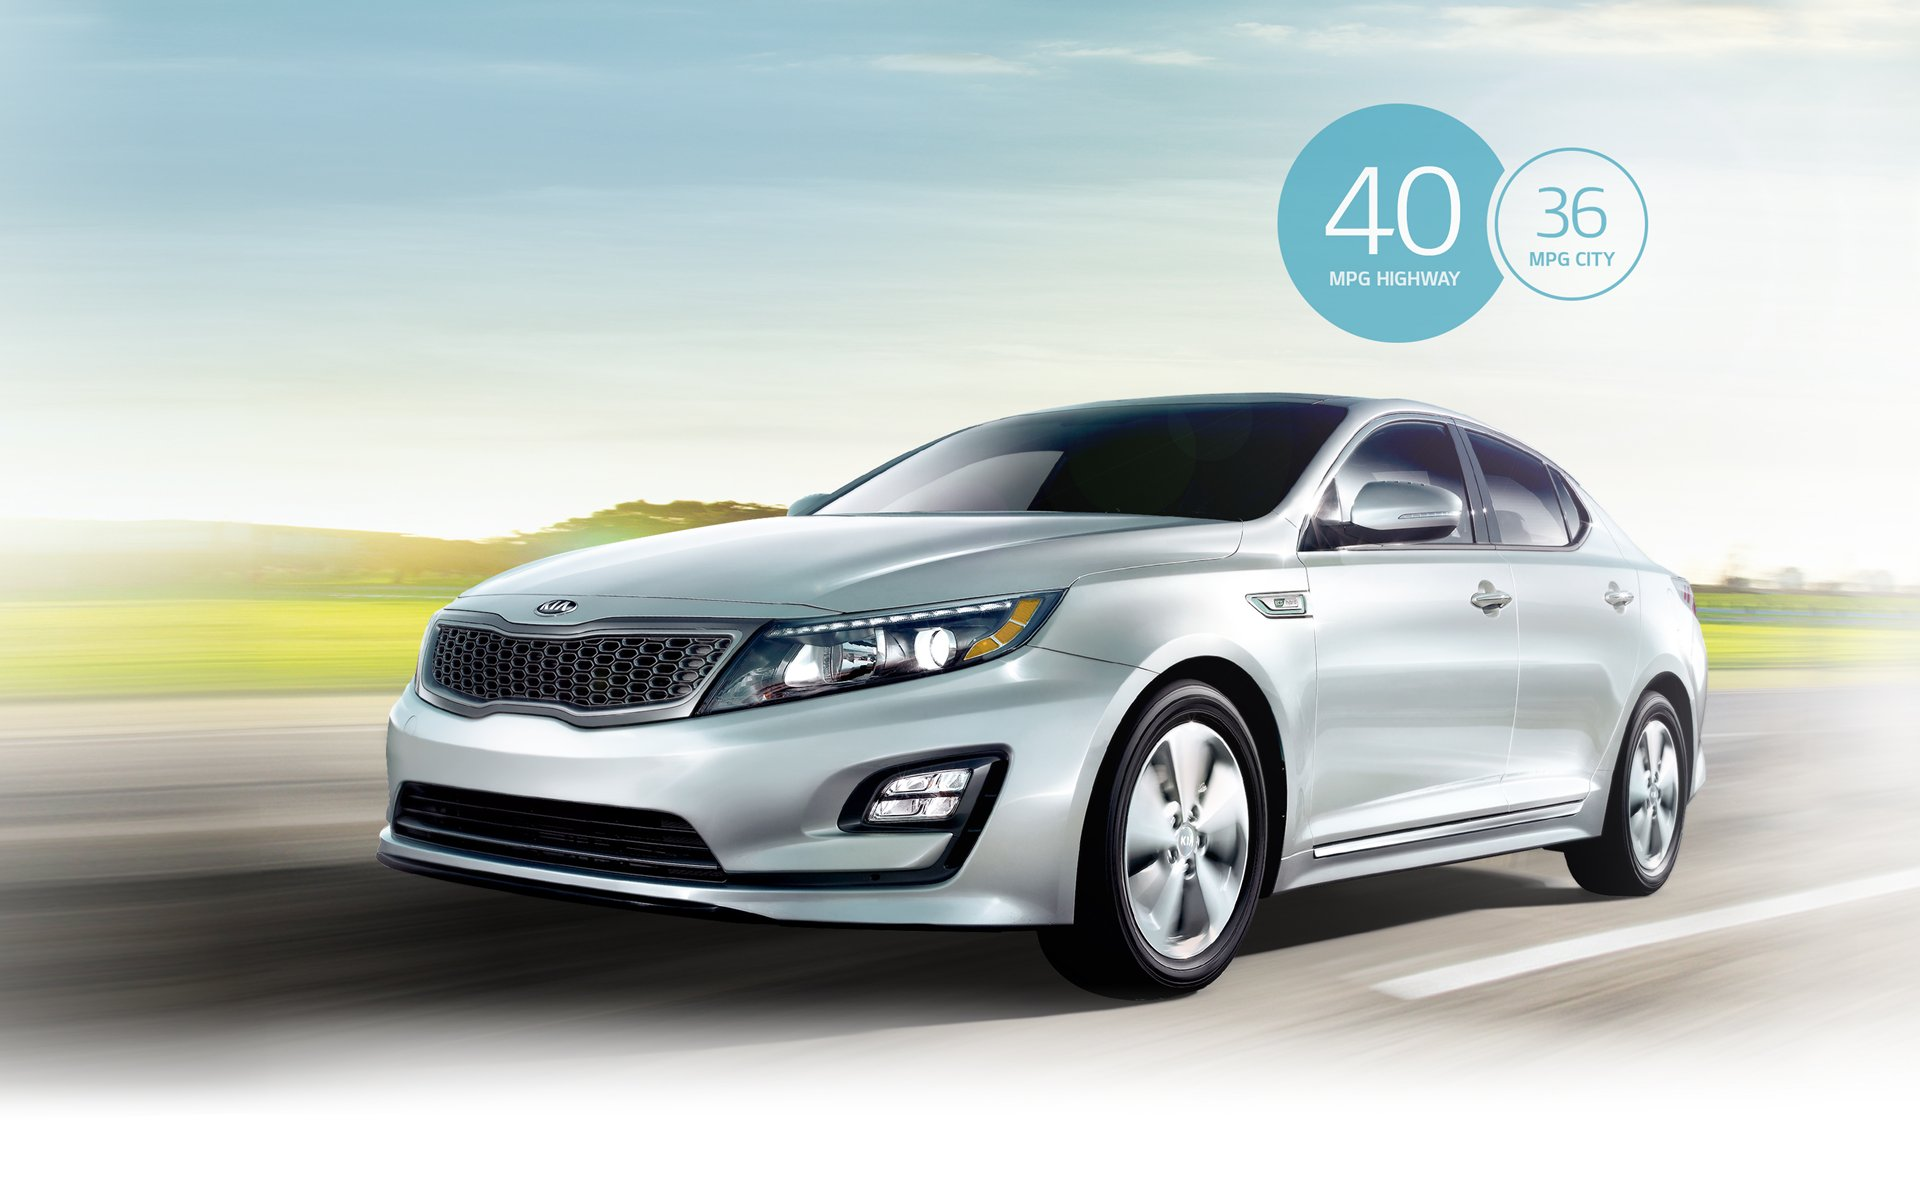 photos kia base reviews sedan price hybrid photo optima features